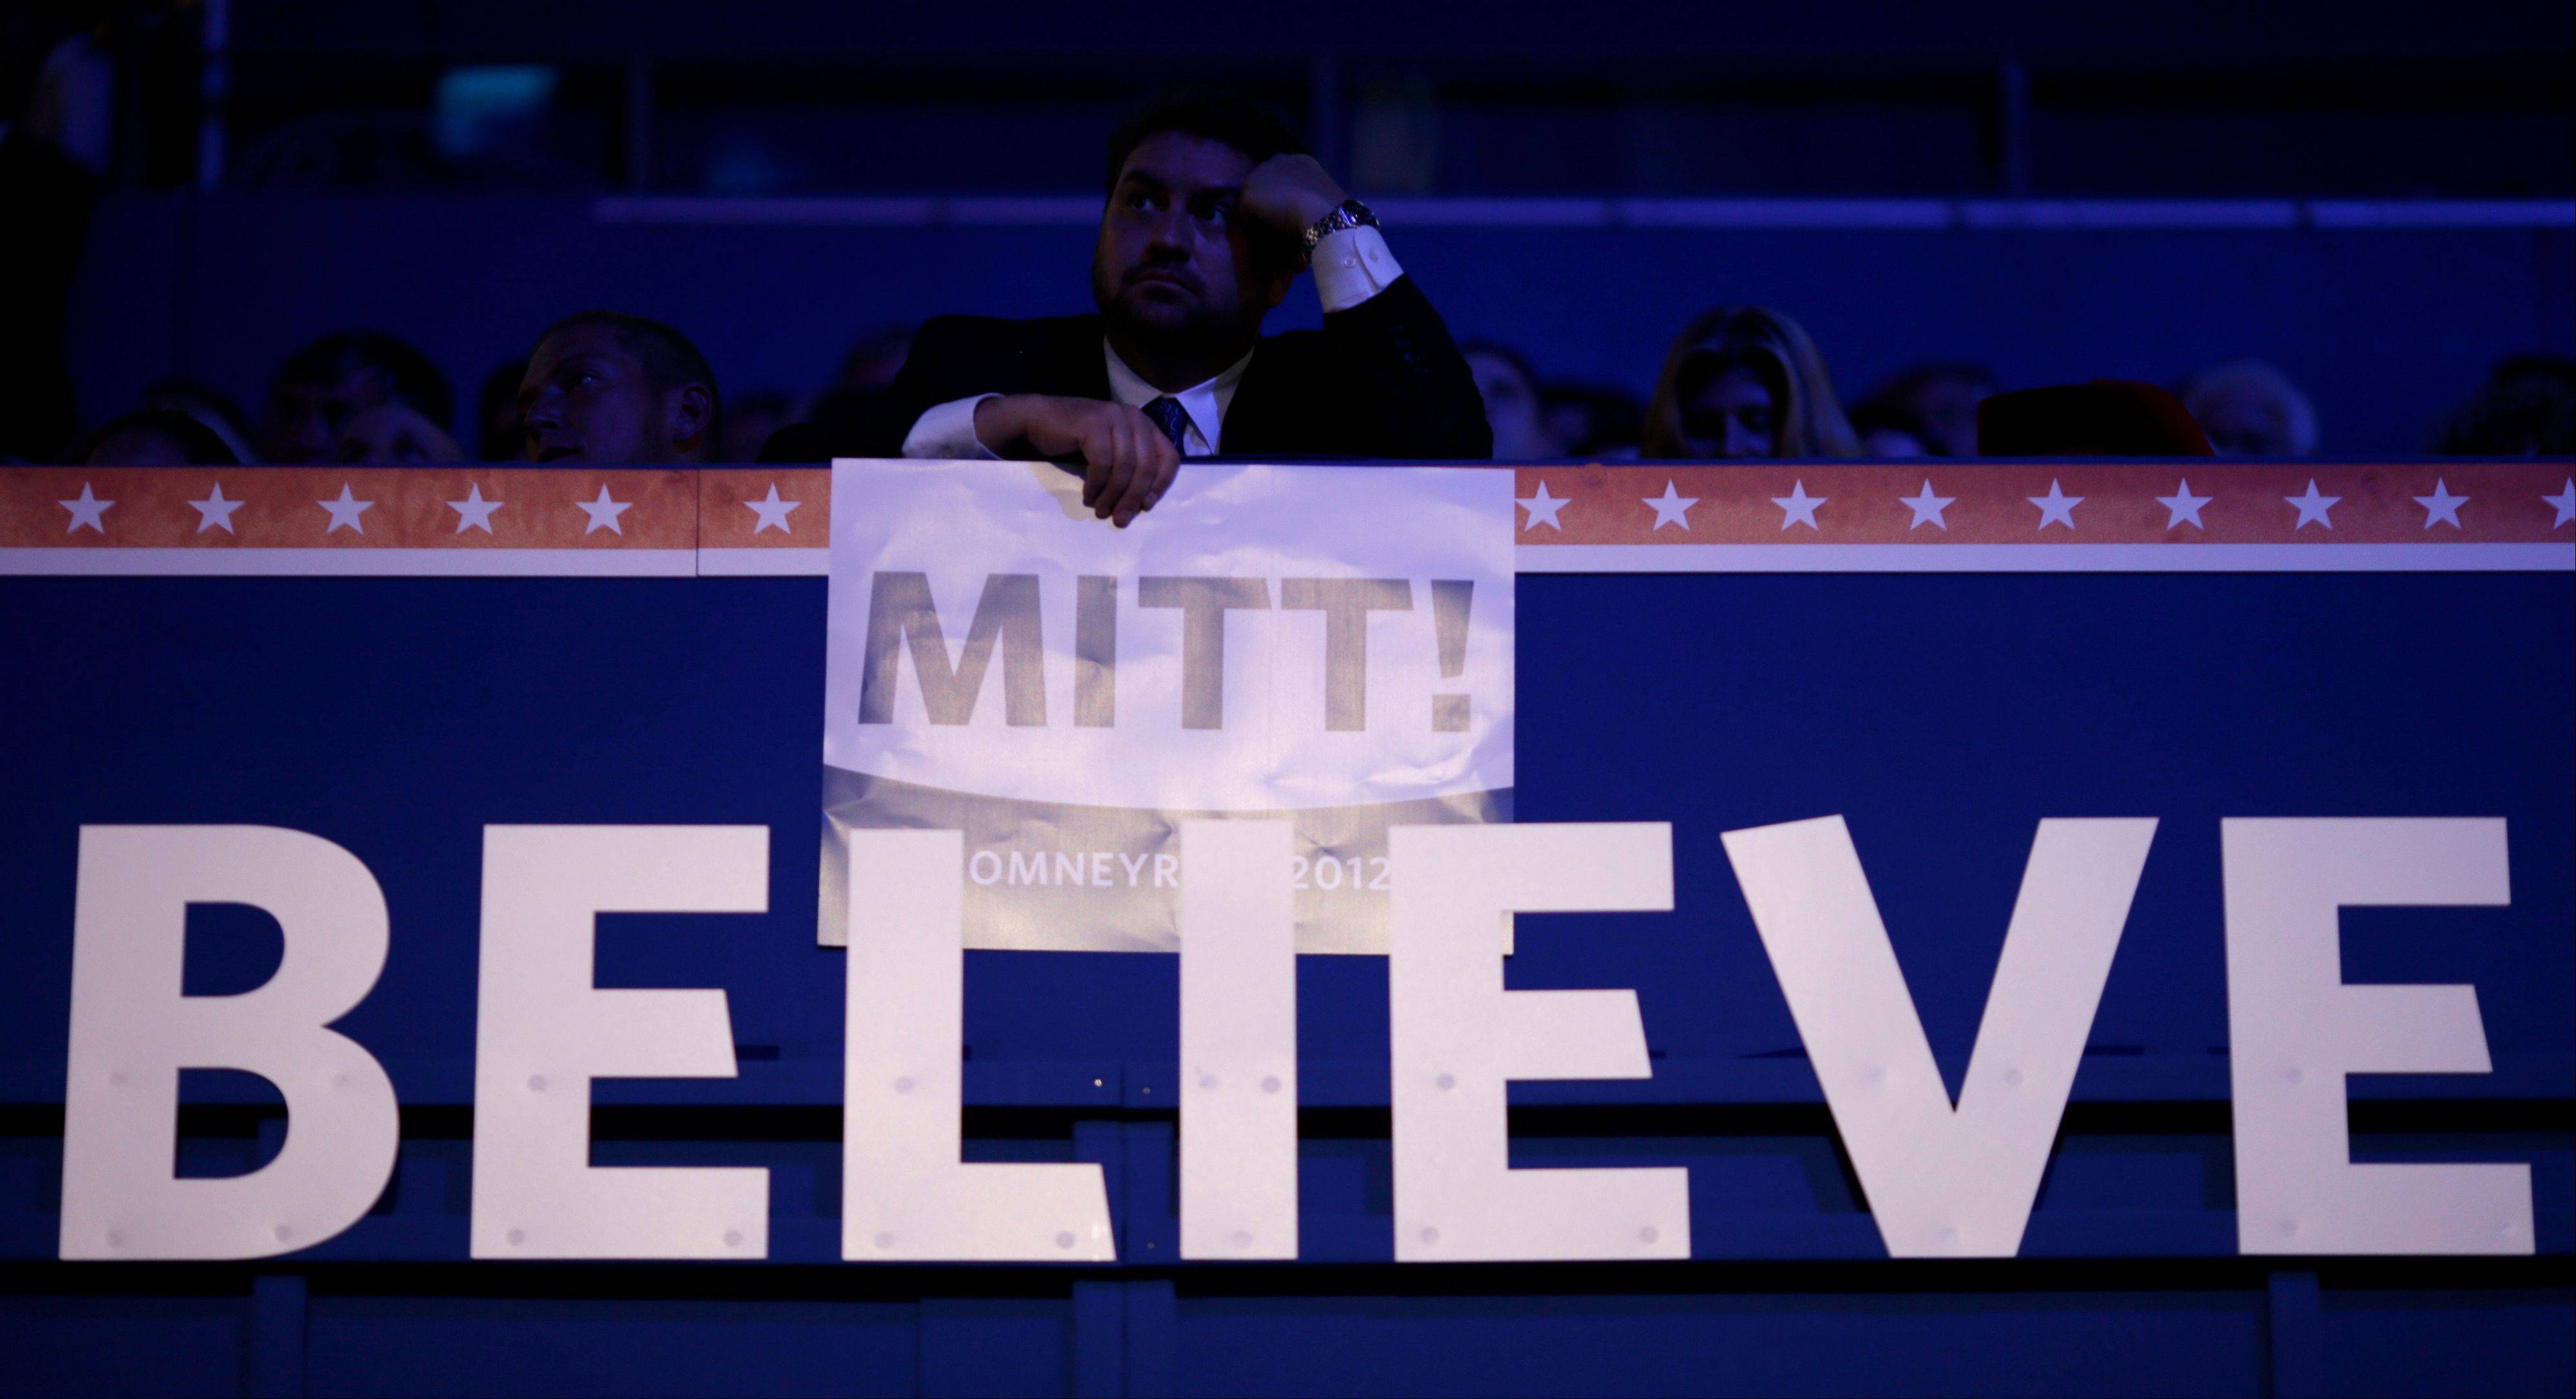 An unidentified delegate holds a sign while watching a video presentation during the Republican National Convention in Tampa, Fla., Aug. 30.